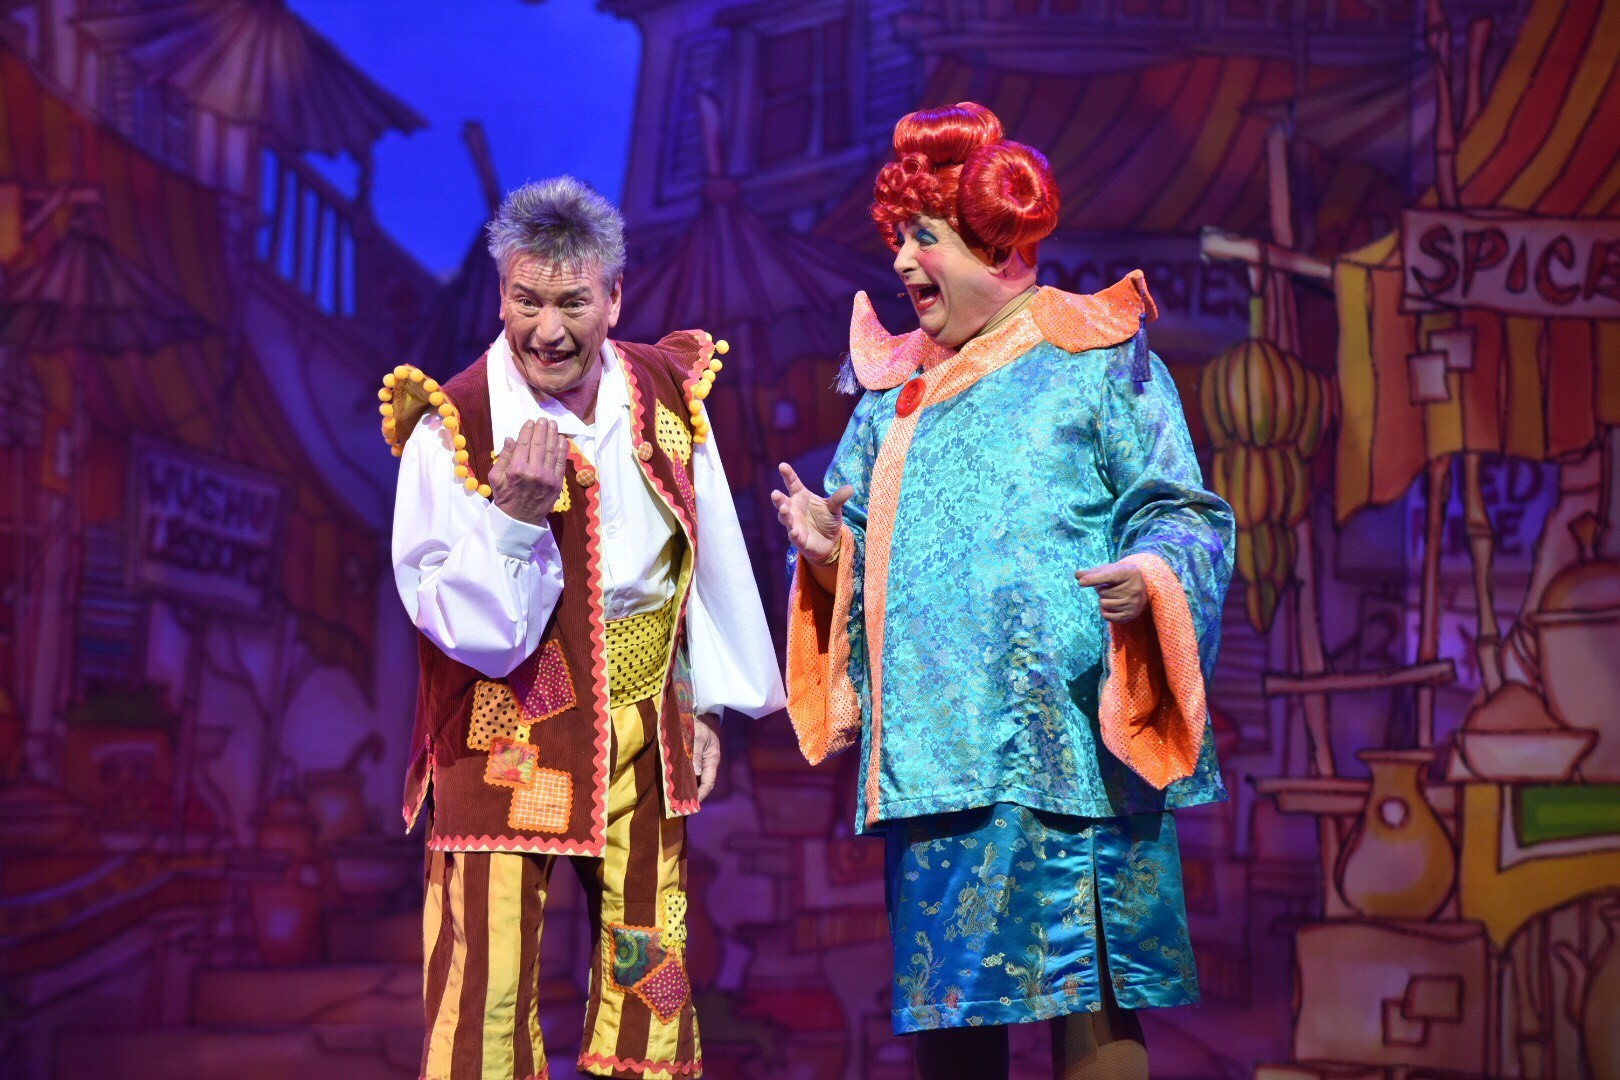 Billy and pals fly in for panto fun